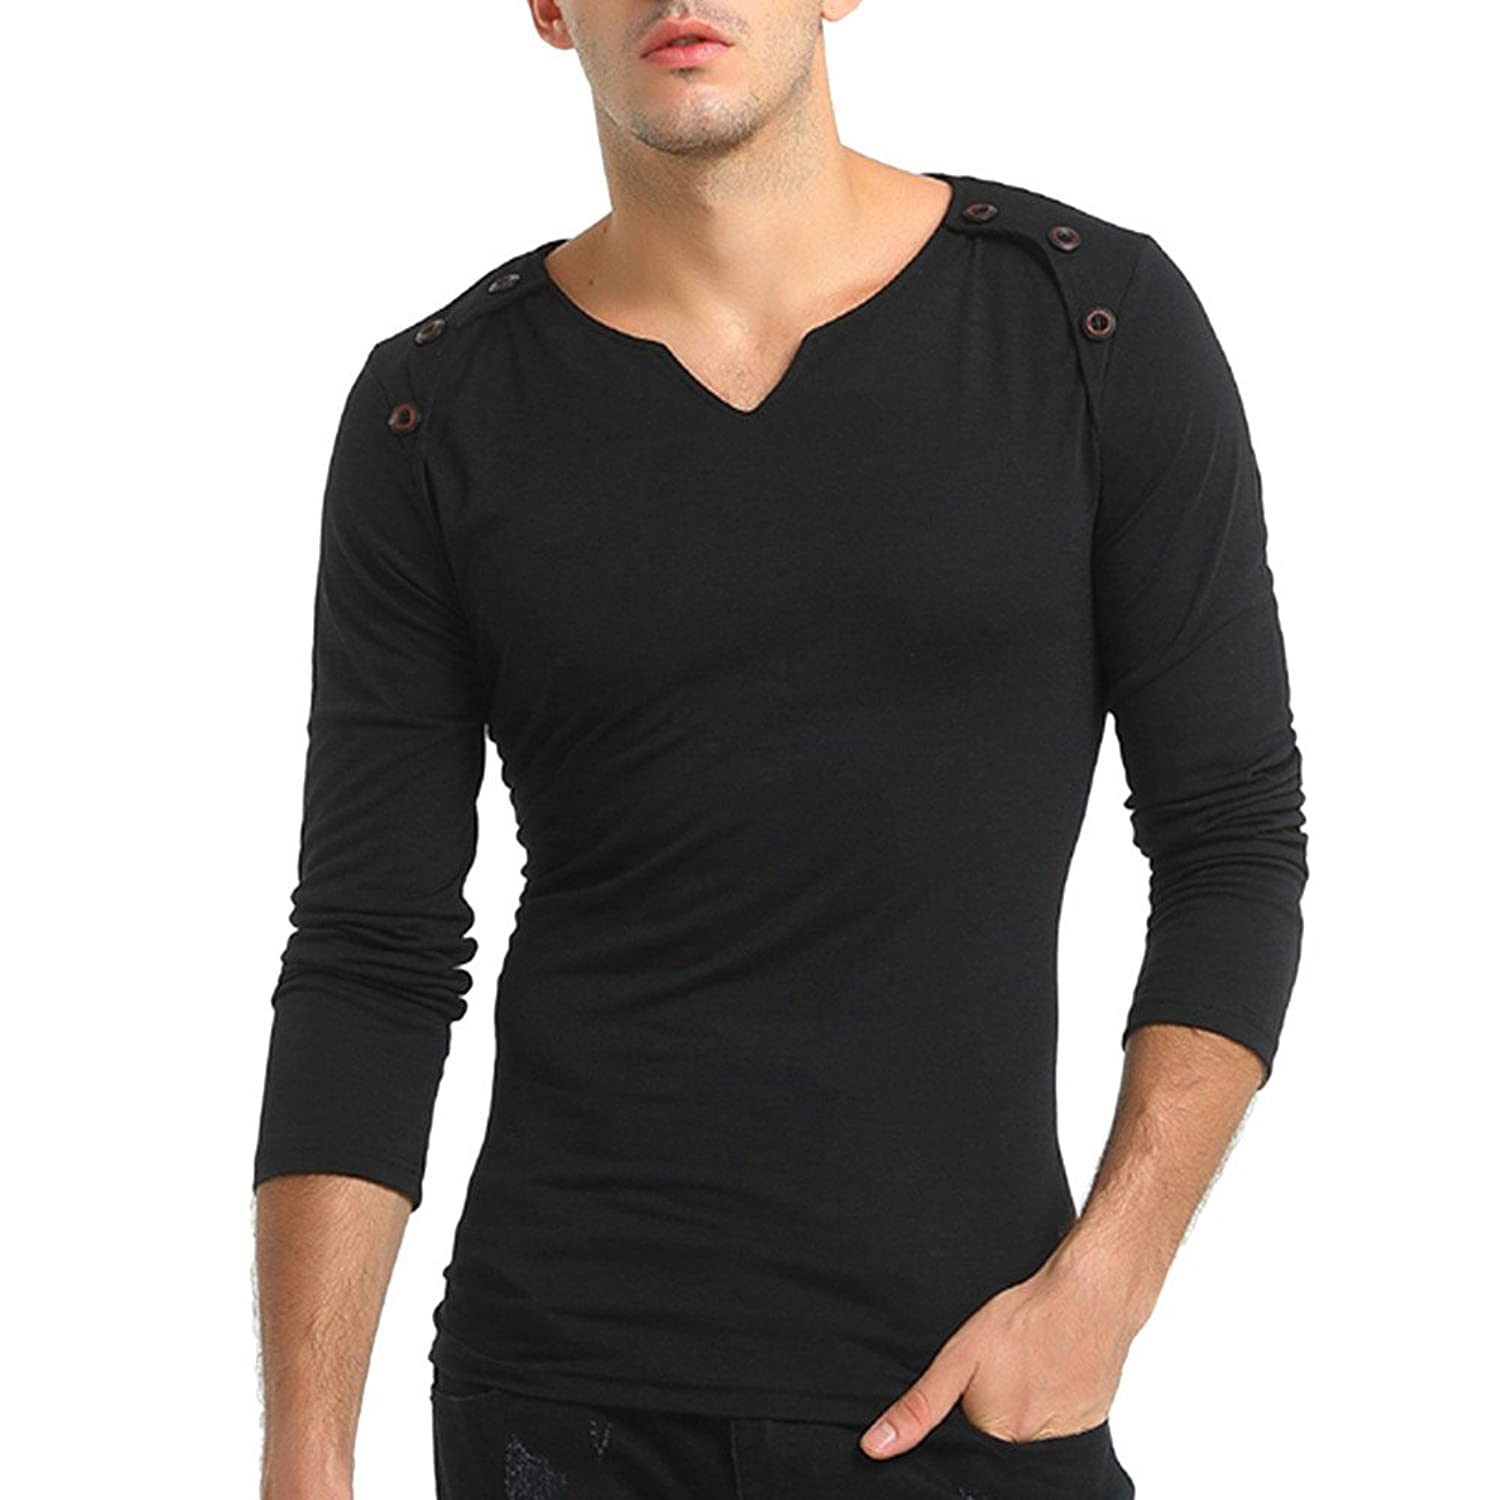 d858cd17c6 ... Autumn,Summer Gender: Man Occasion: Casual, Party, Beach,Work Material:  Cotton Blend Pattern Type:Patchwork Style: Casual, Handsome, Sleeve length:  ...